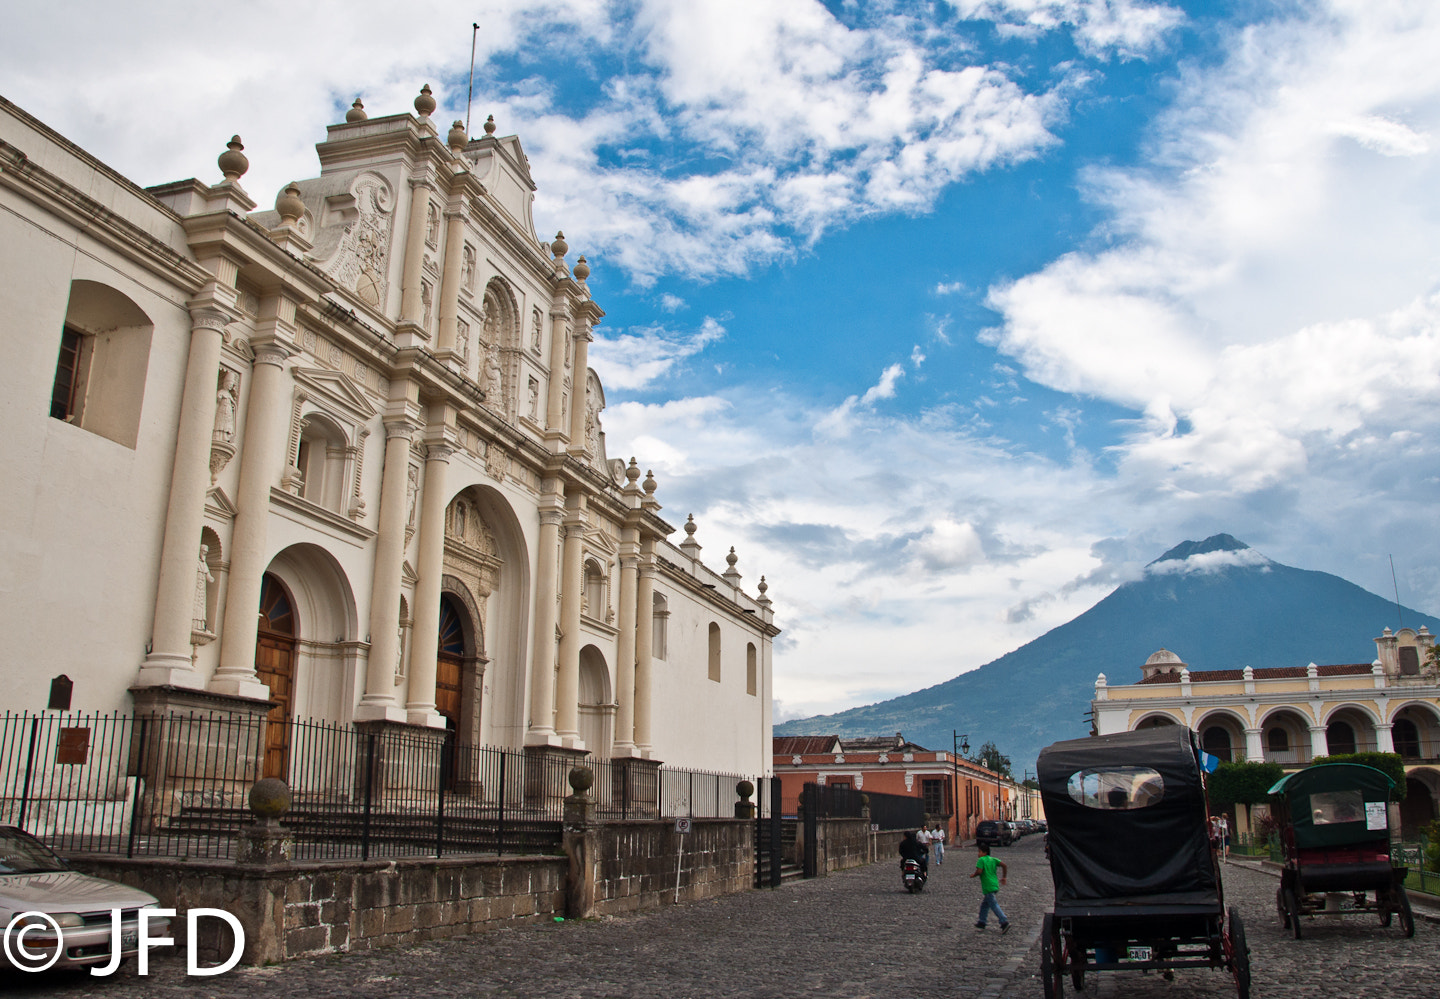 Photograph Antigua Guatemala by Juanfer Duran on 500px